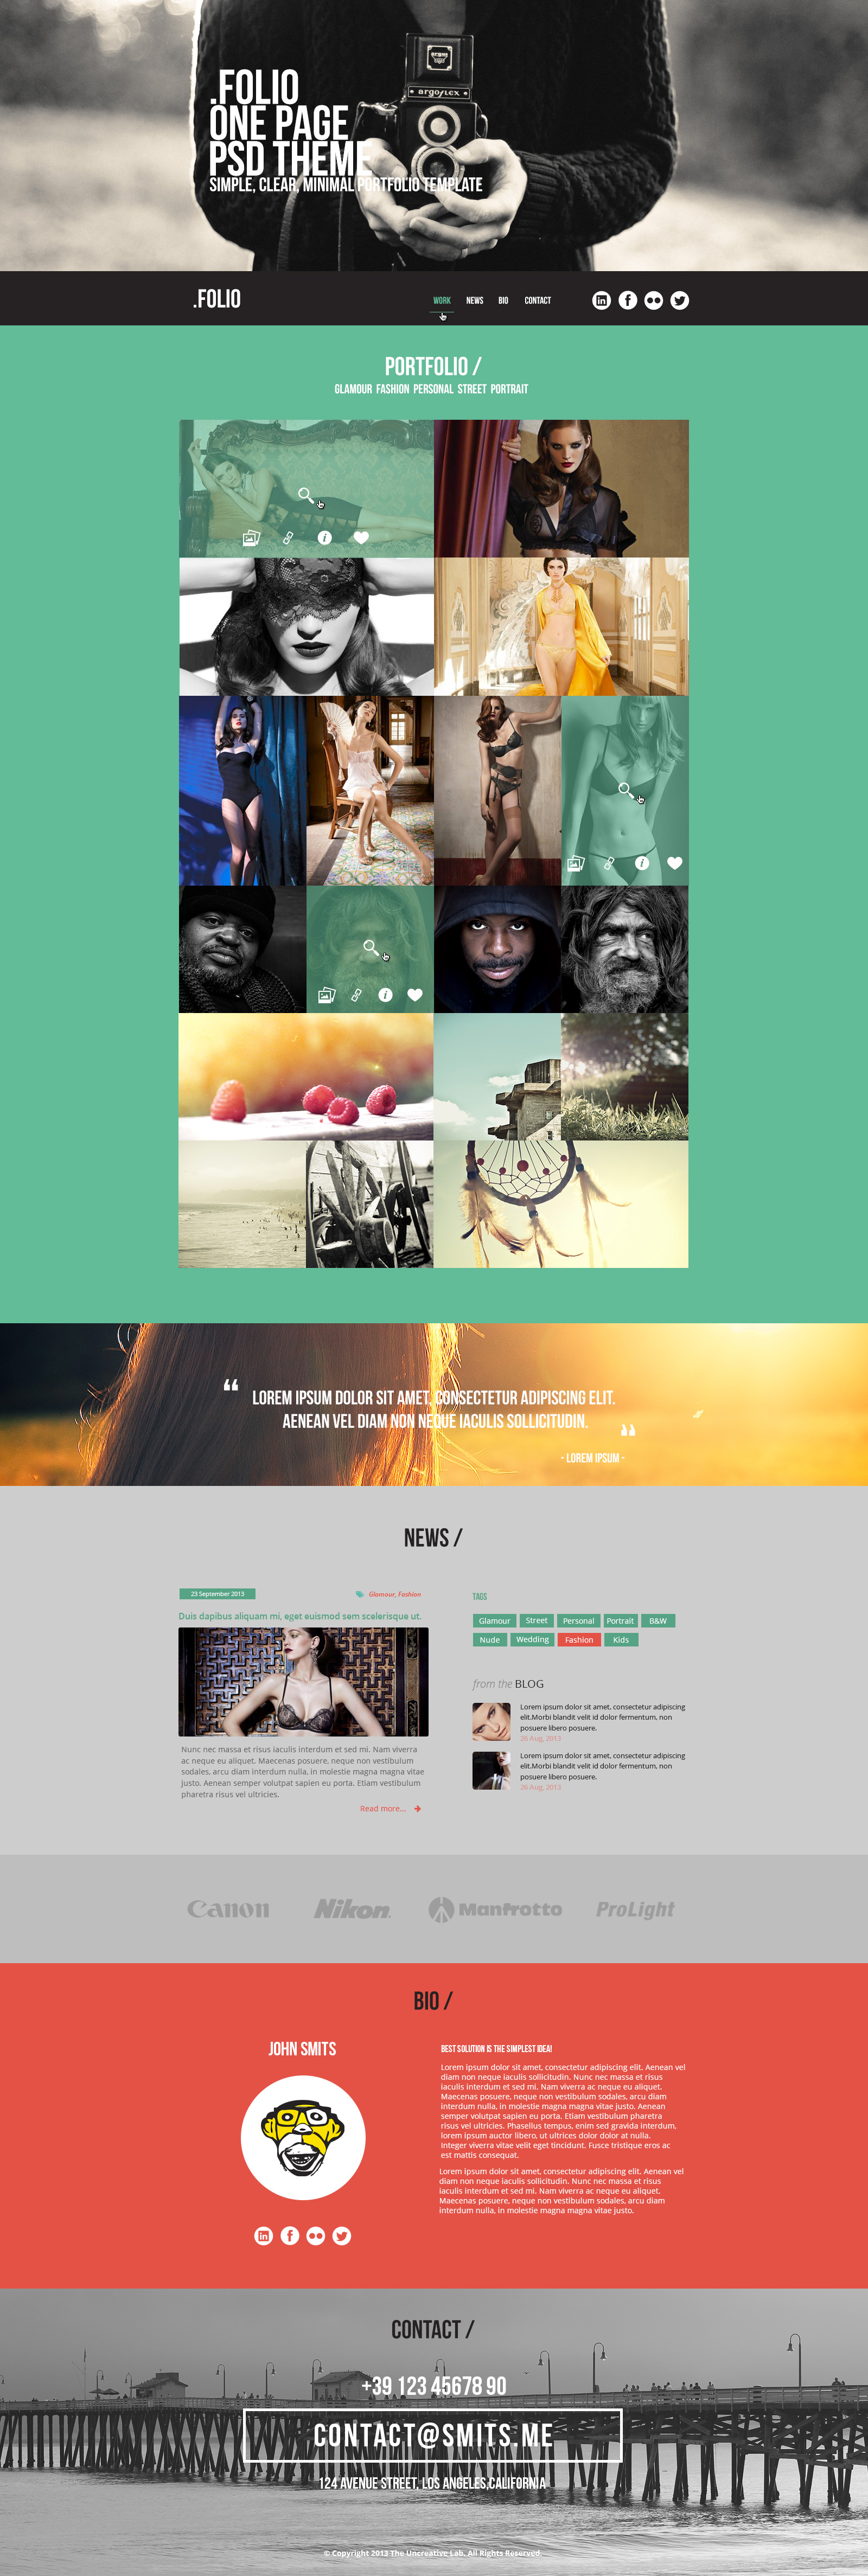 portfolio-free-website-psd